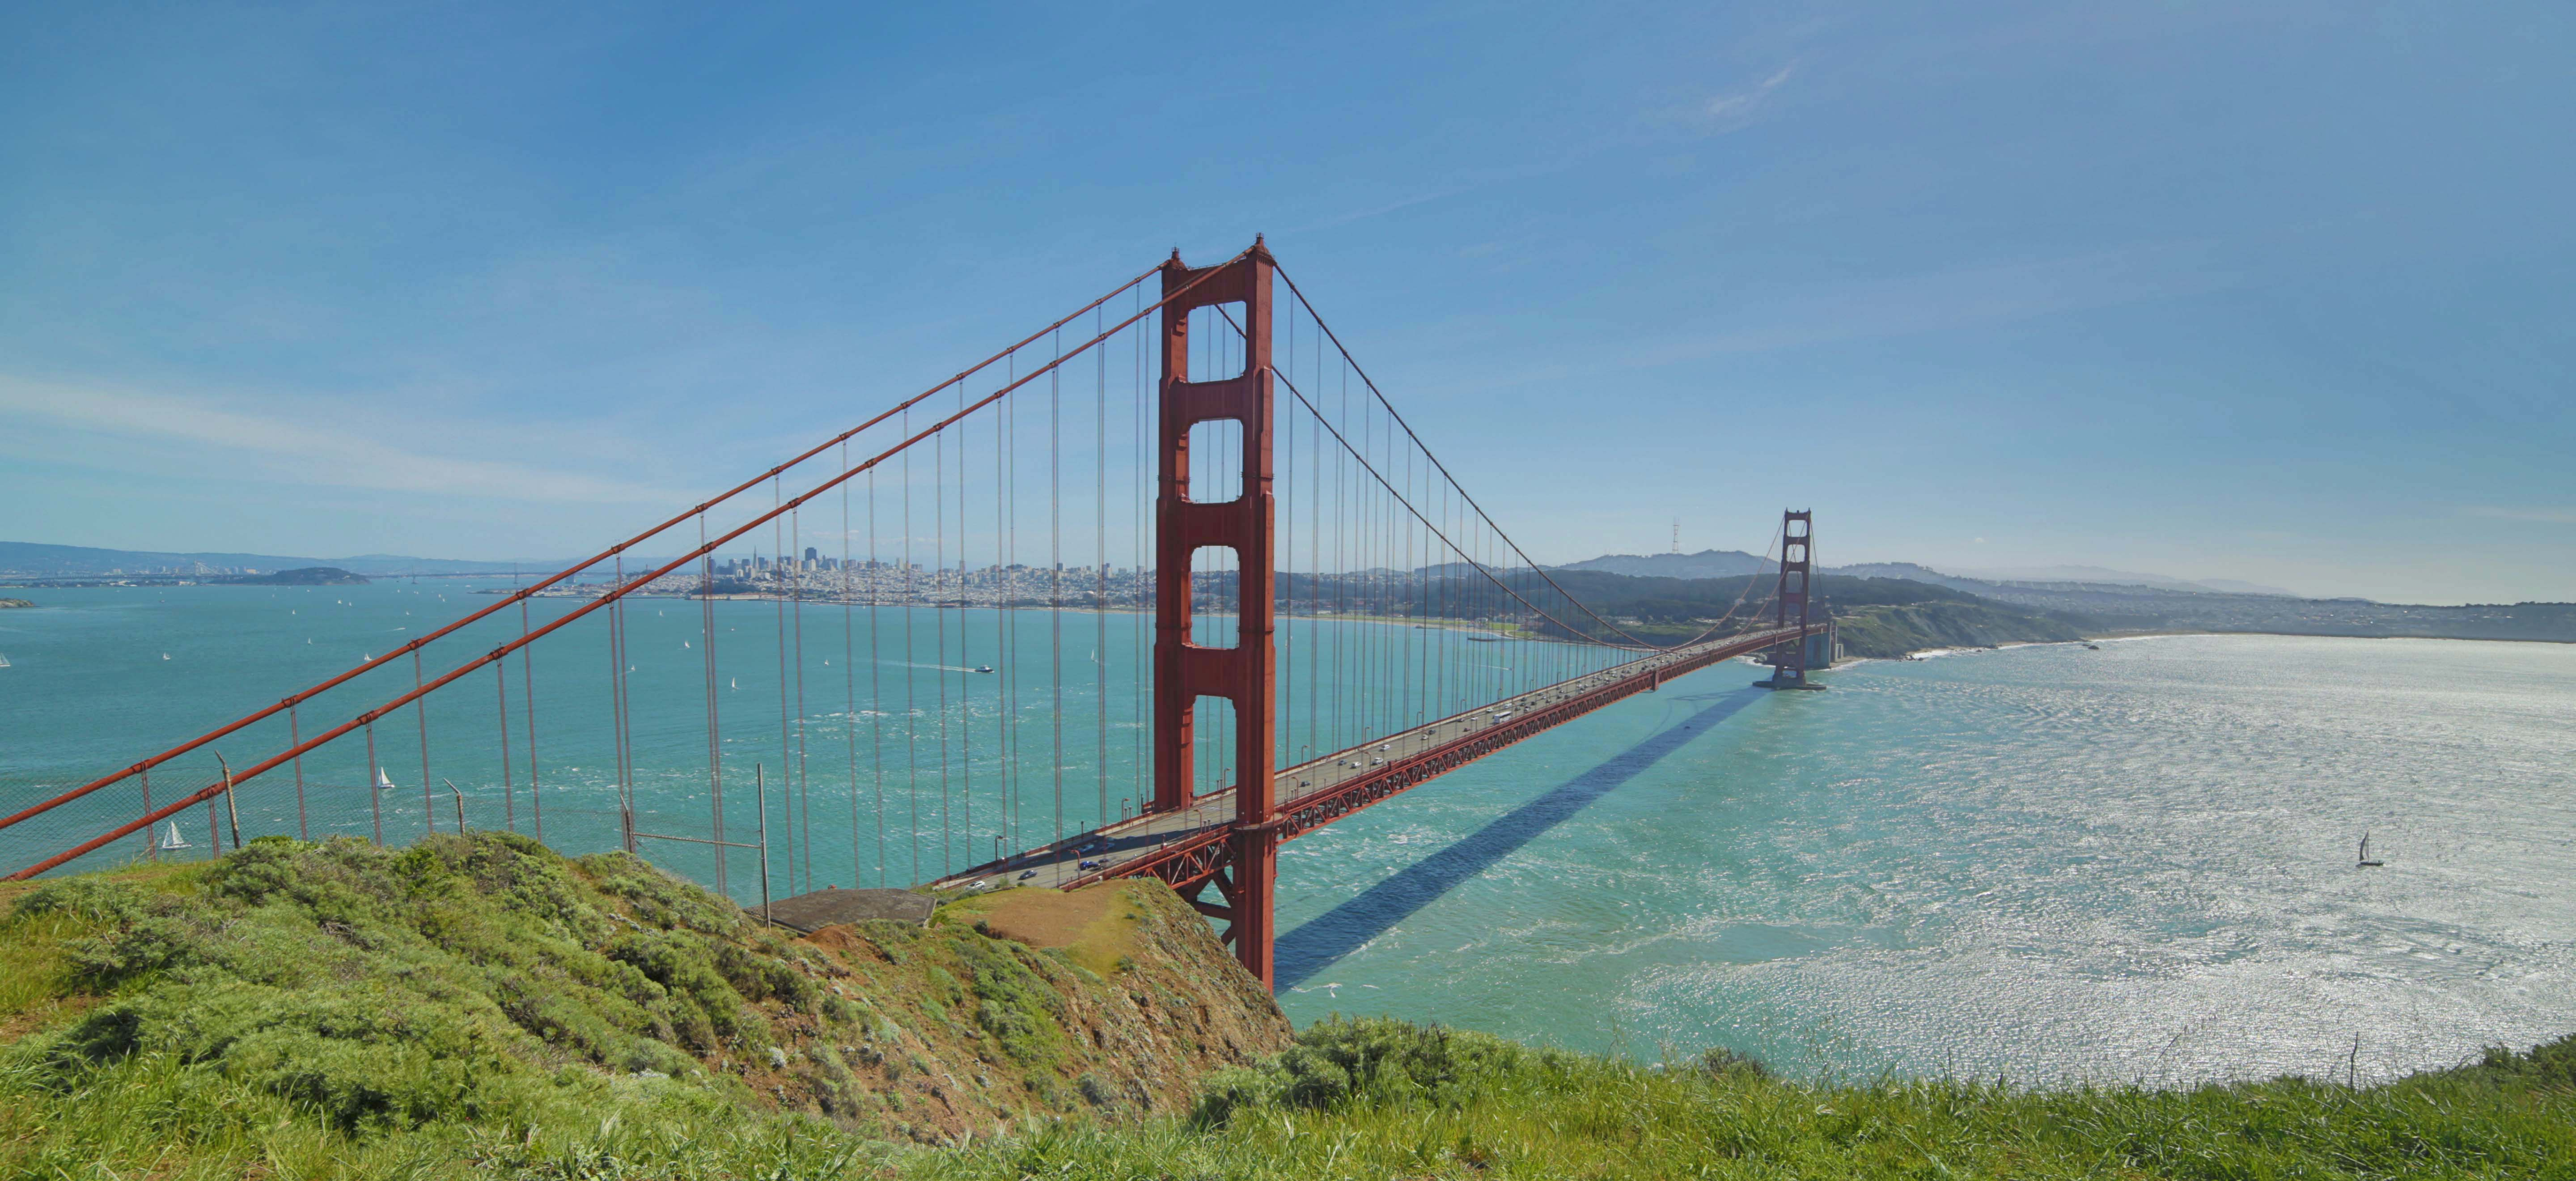 jaion_usa_blog_o_ameryce_san_francisco_golden_gate